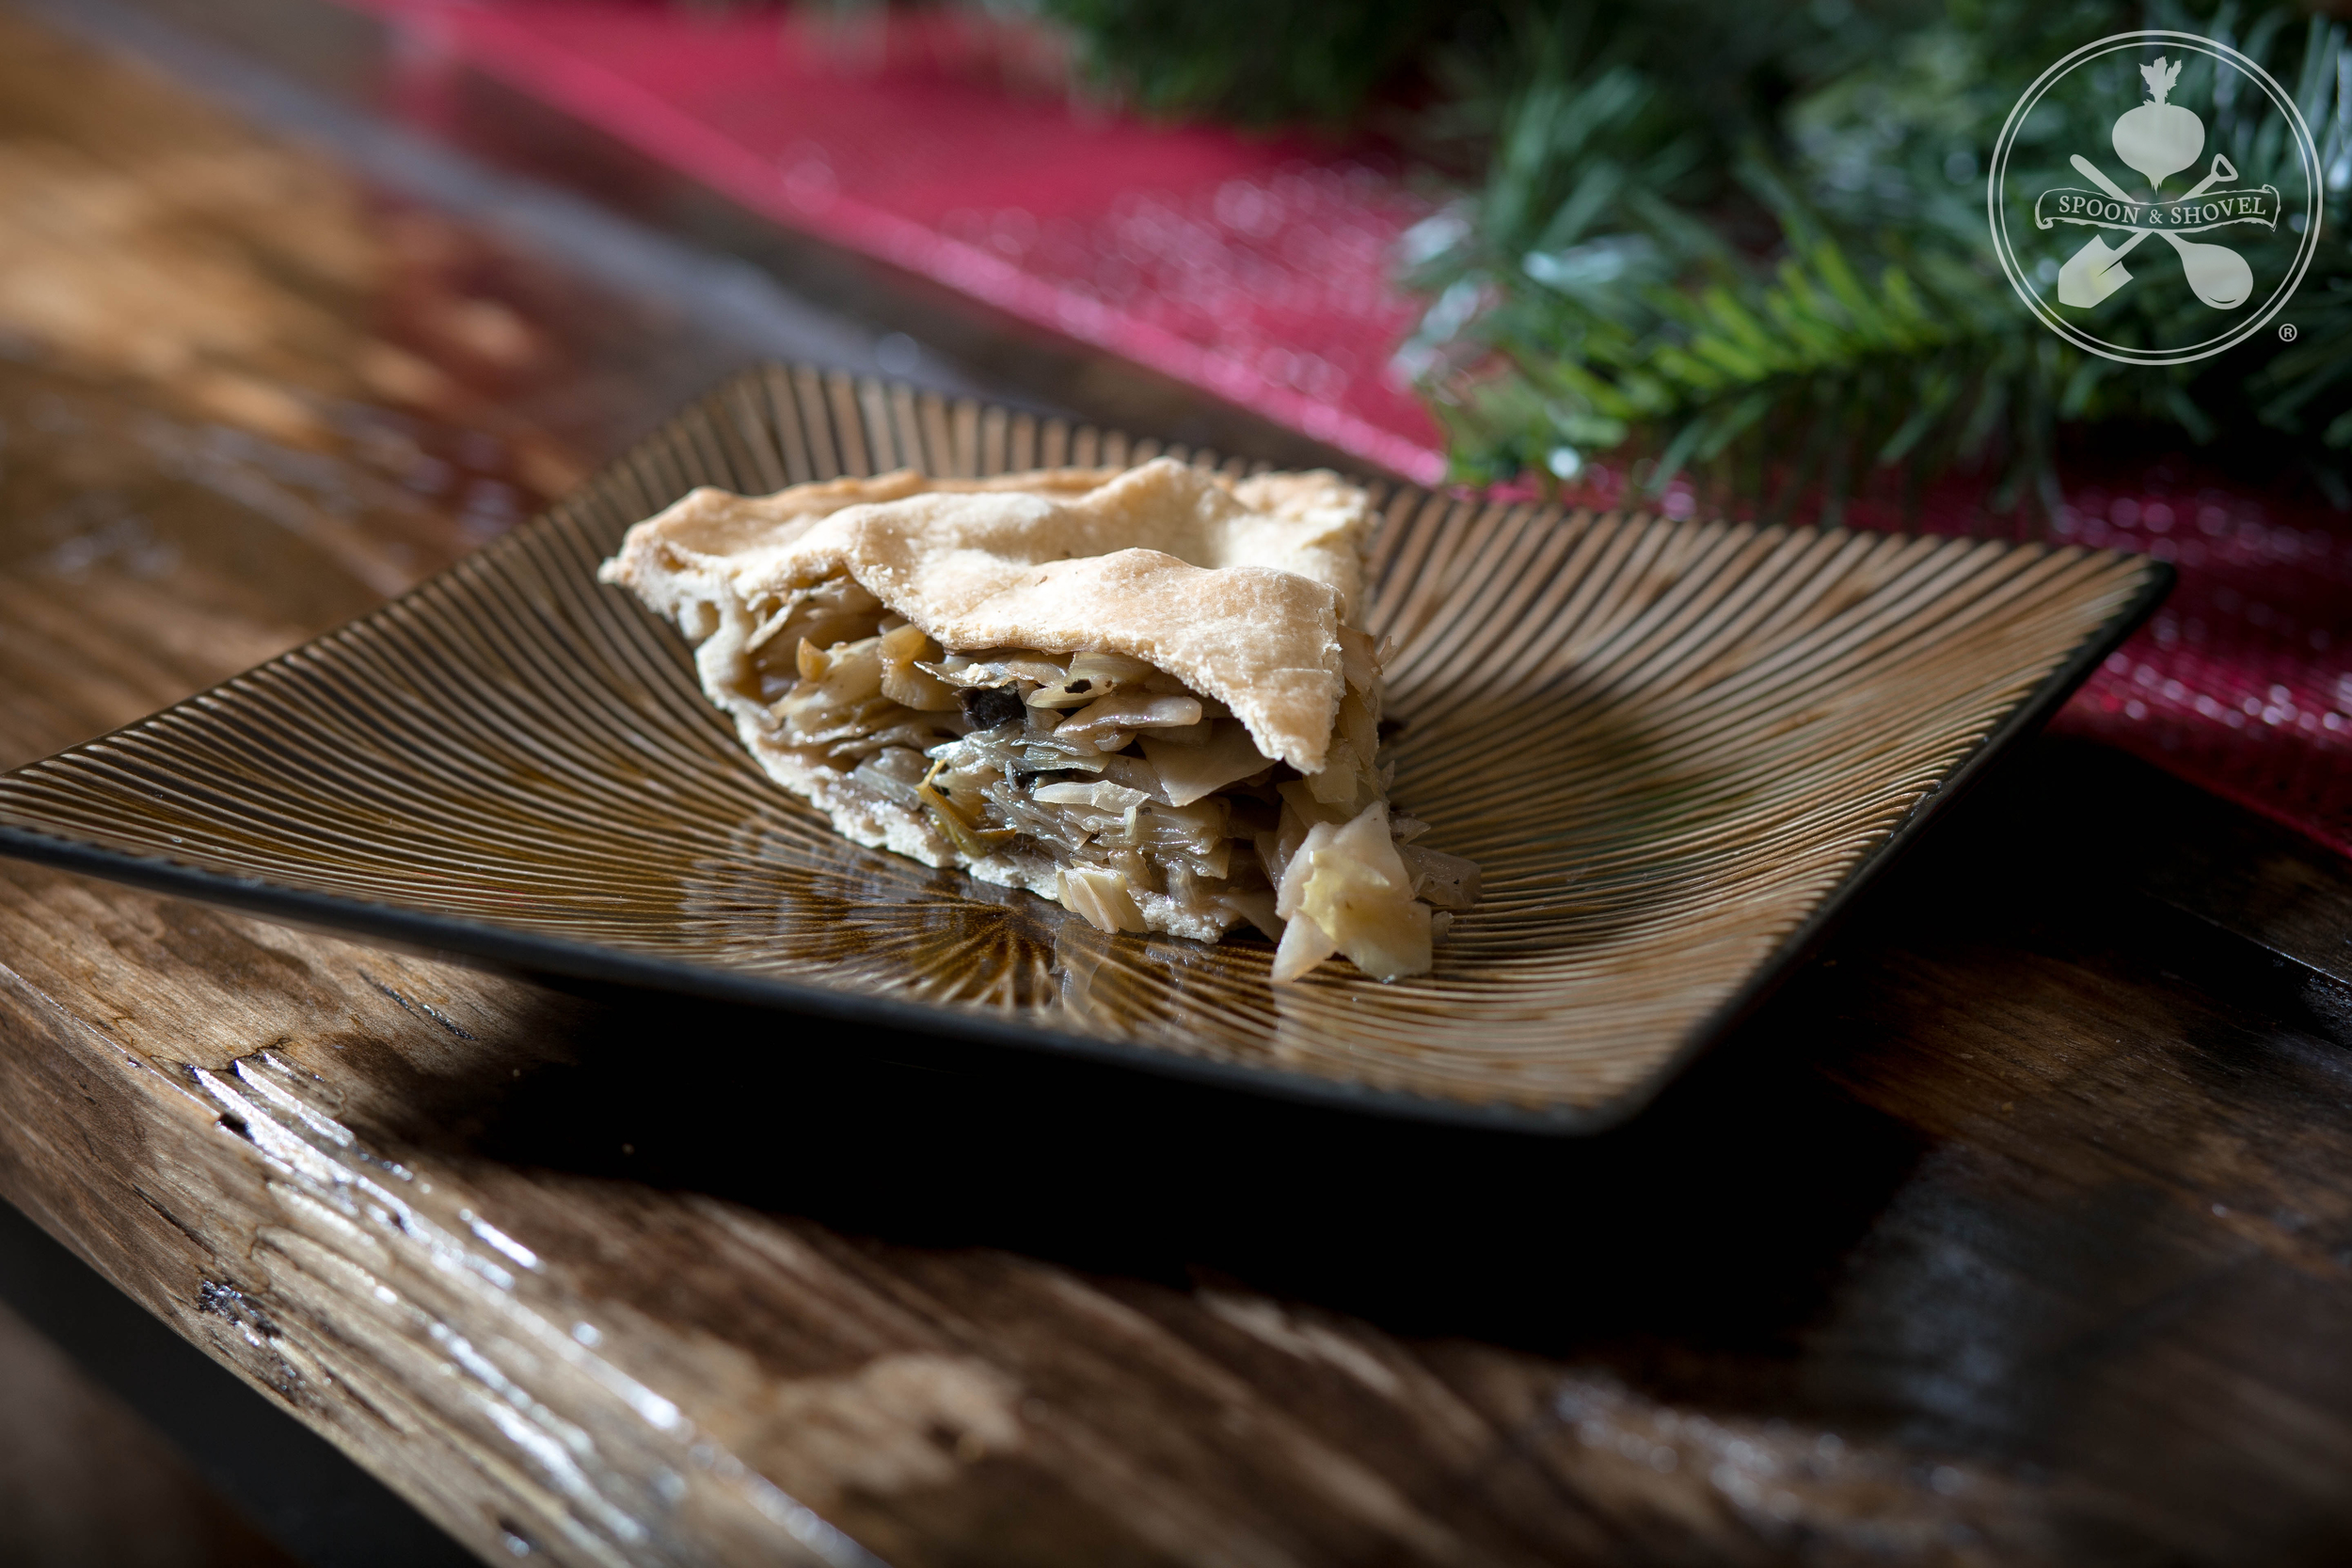 New Year's Day cabbage pie with leek, fennel and mushroom from The Spoon + Shovel